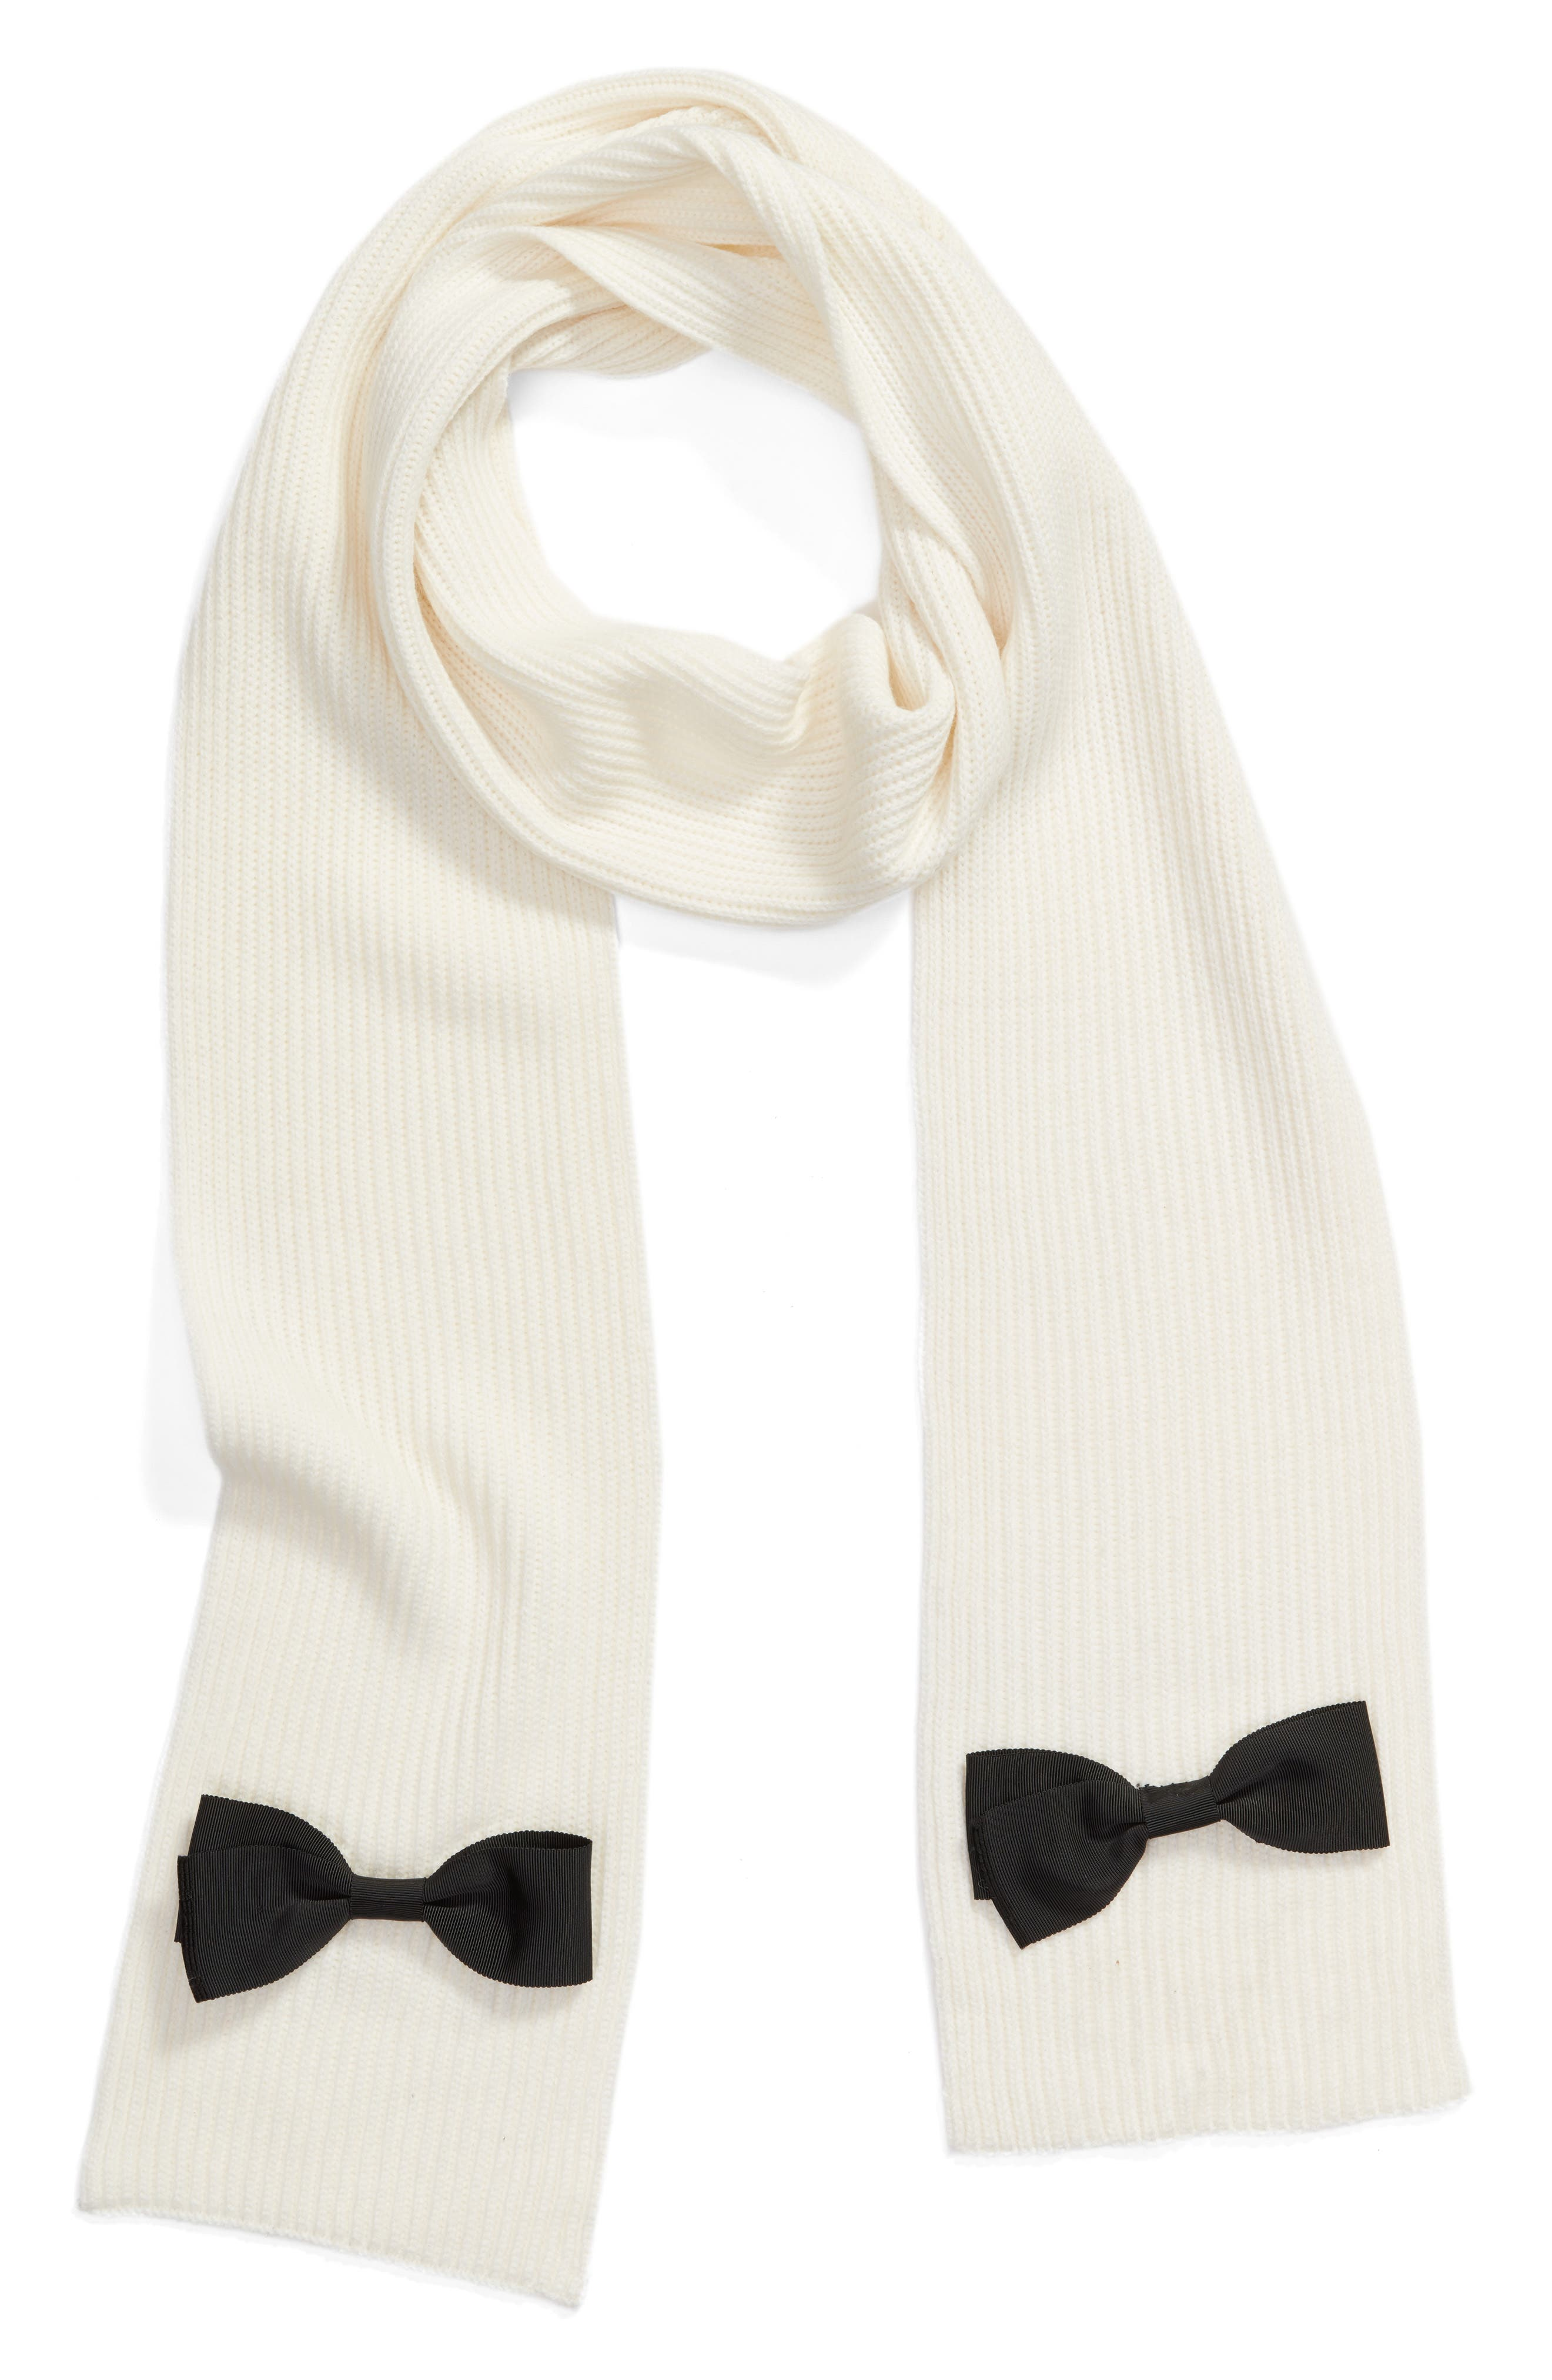 grosgrain bow muffler scarf,                             Alternate thumbnail 3, color,                             Cream